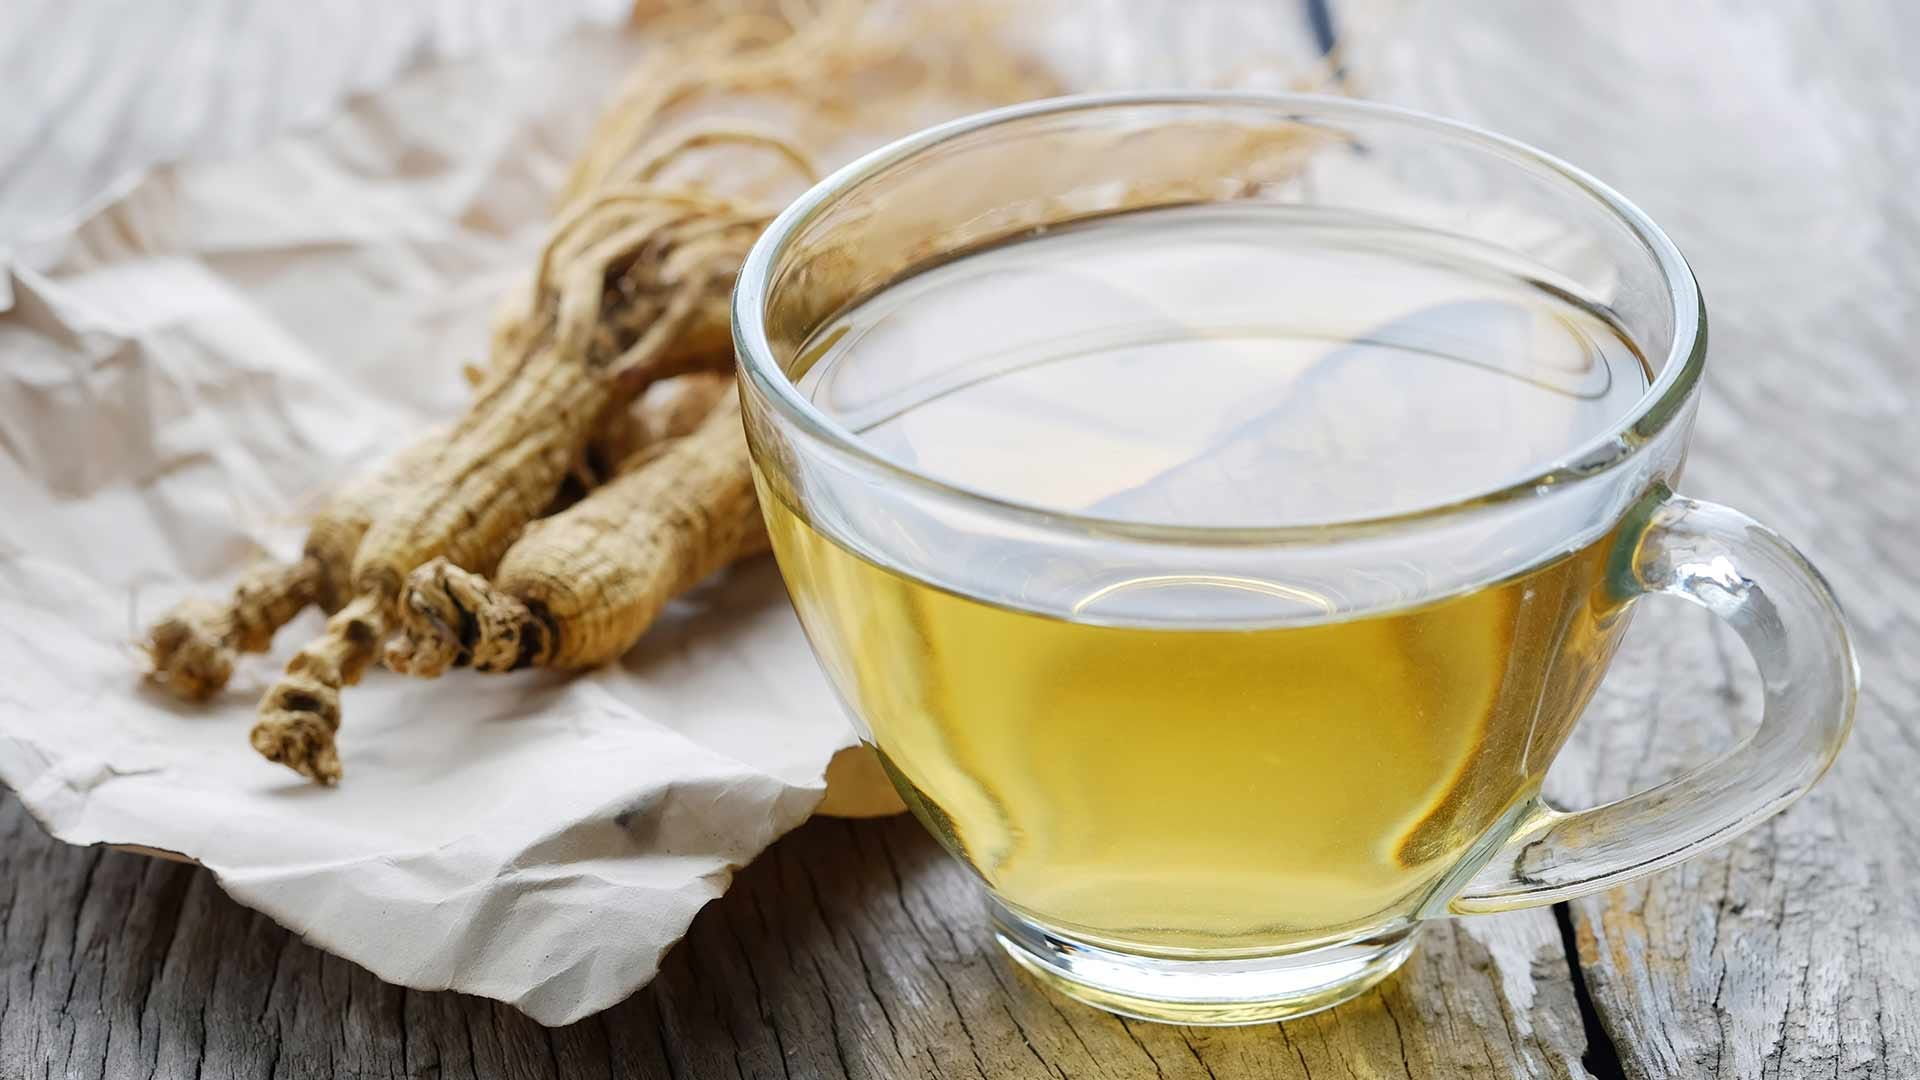 Fresh ginseng tear in a clear glass teacup.